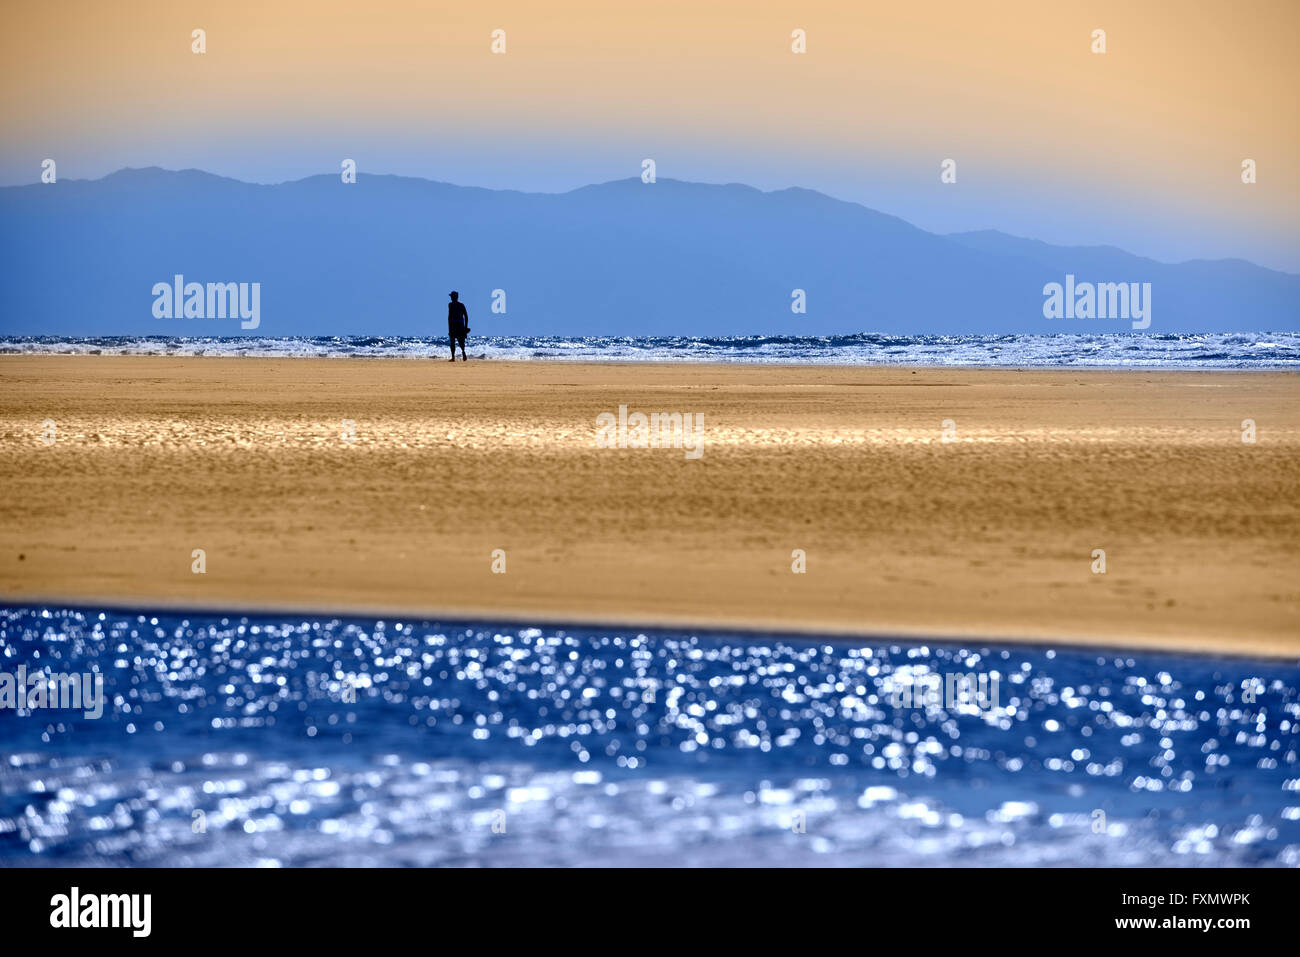 Single man on Mexican beach with colorful Pacific ocean and Sierra Madre Mountains Nuevo Vallarta Mexico blue and - Stock Image